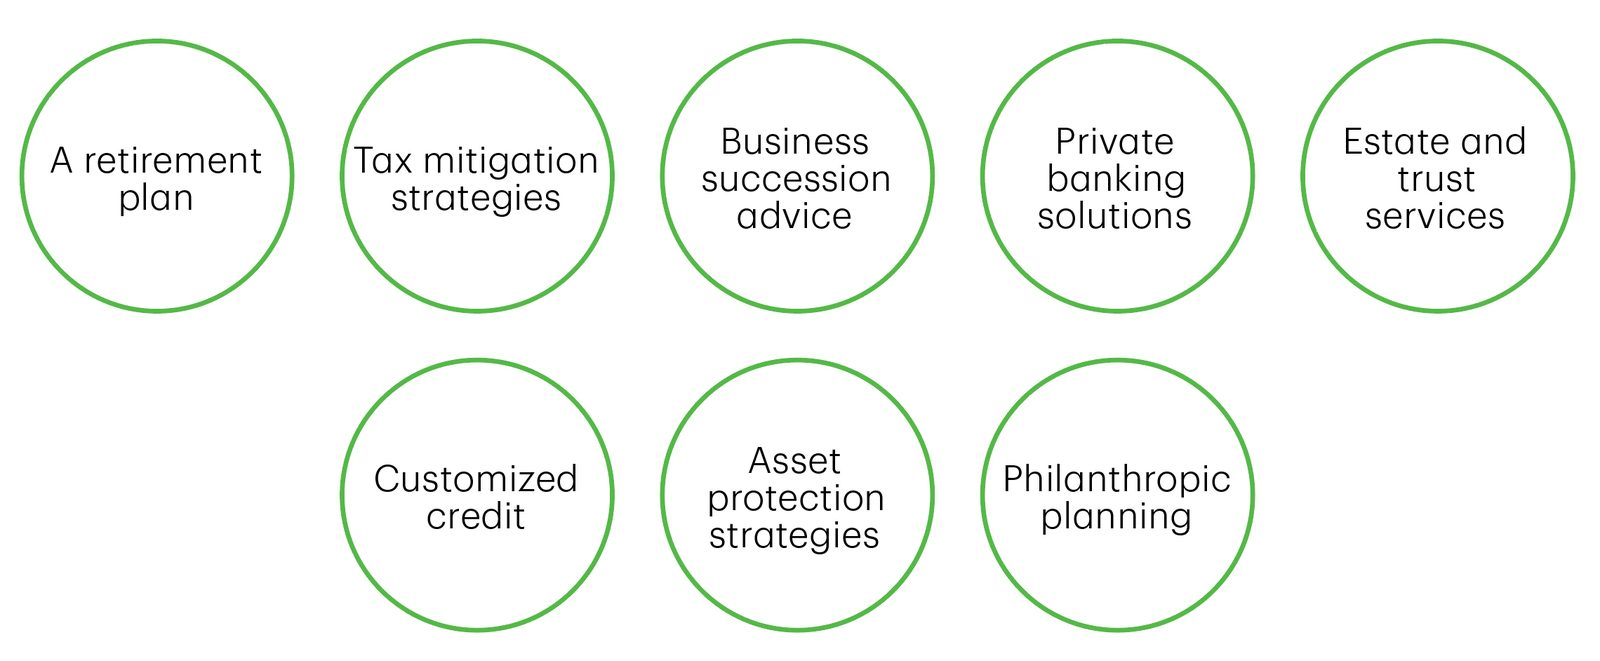 IntegratedWealthServicesGraphic_Option1.jpg